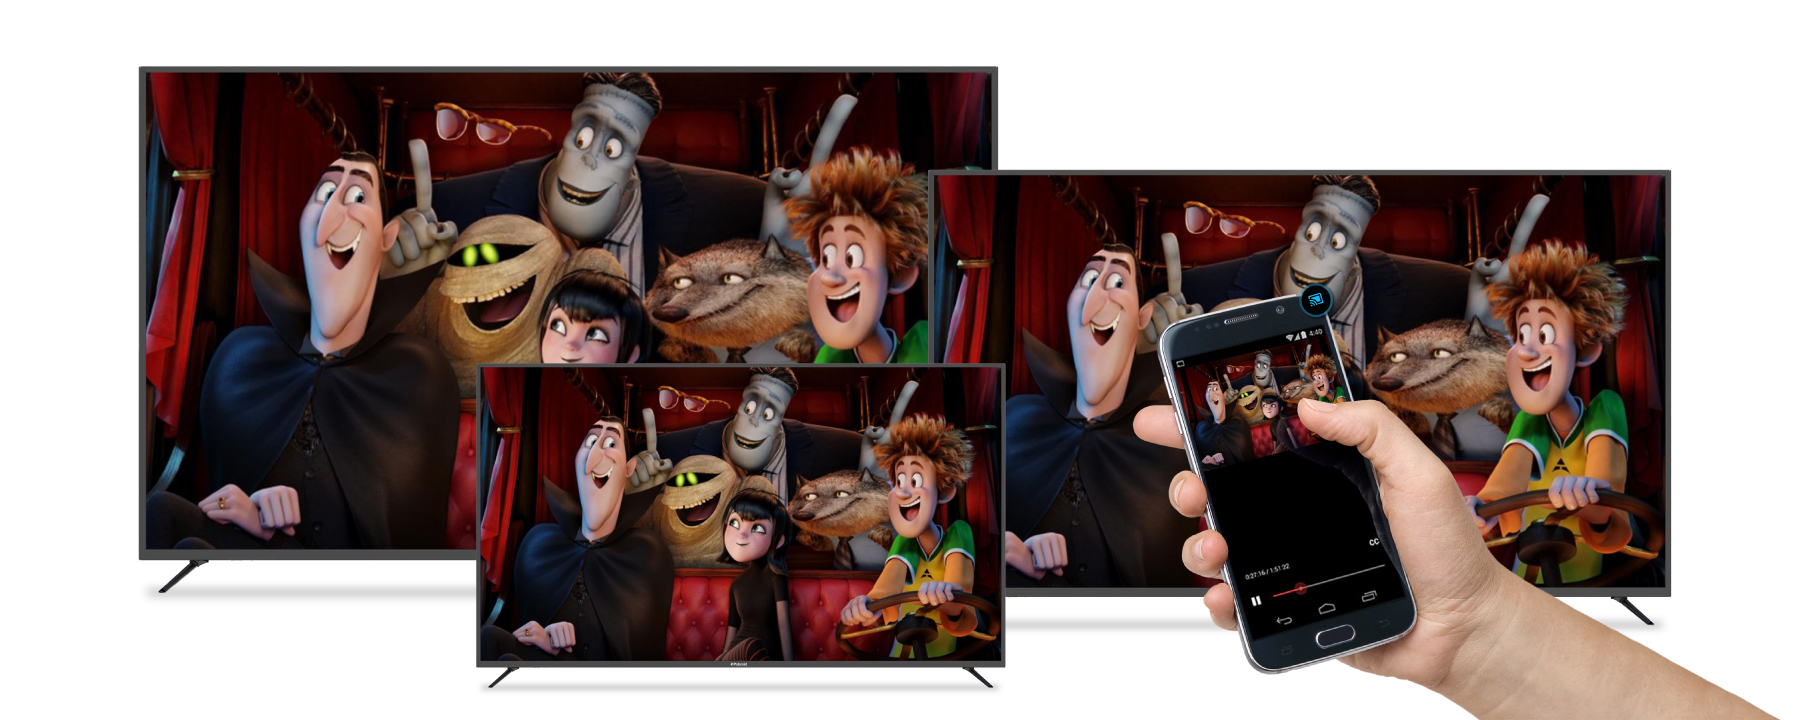 Polaroid shows off 4K TVs with built-in Chromecast at CES